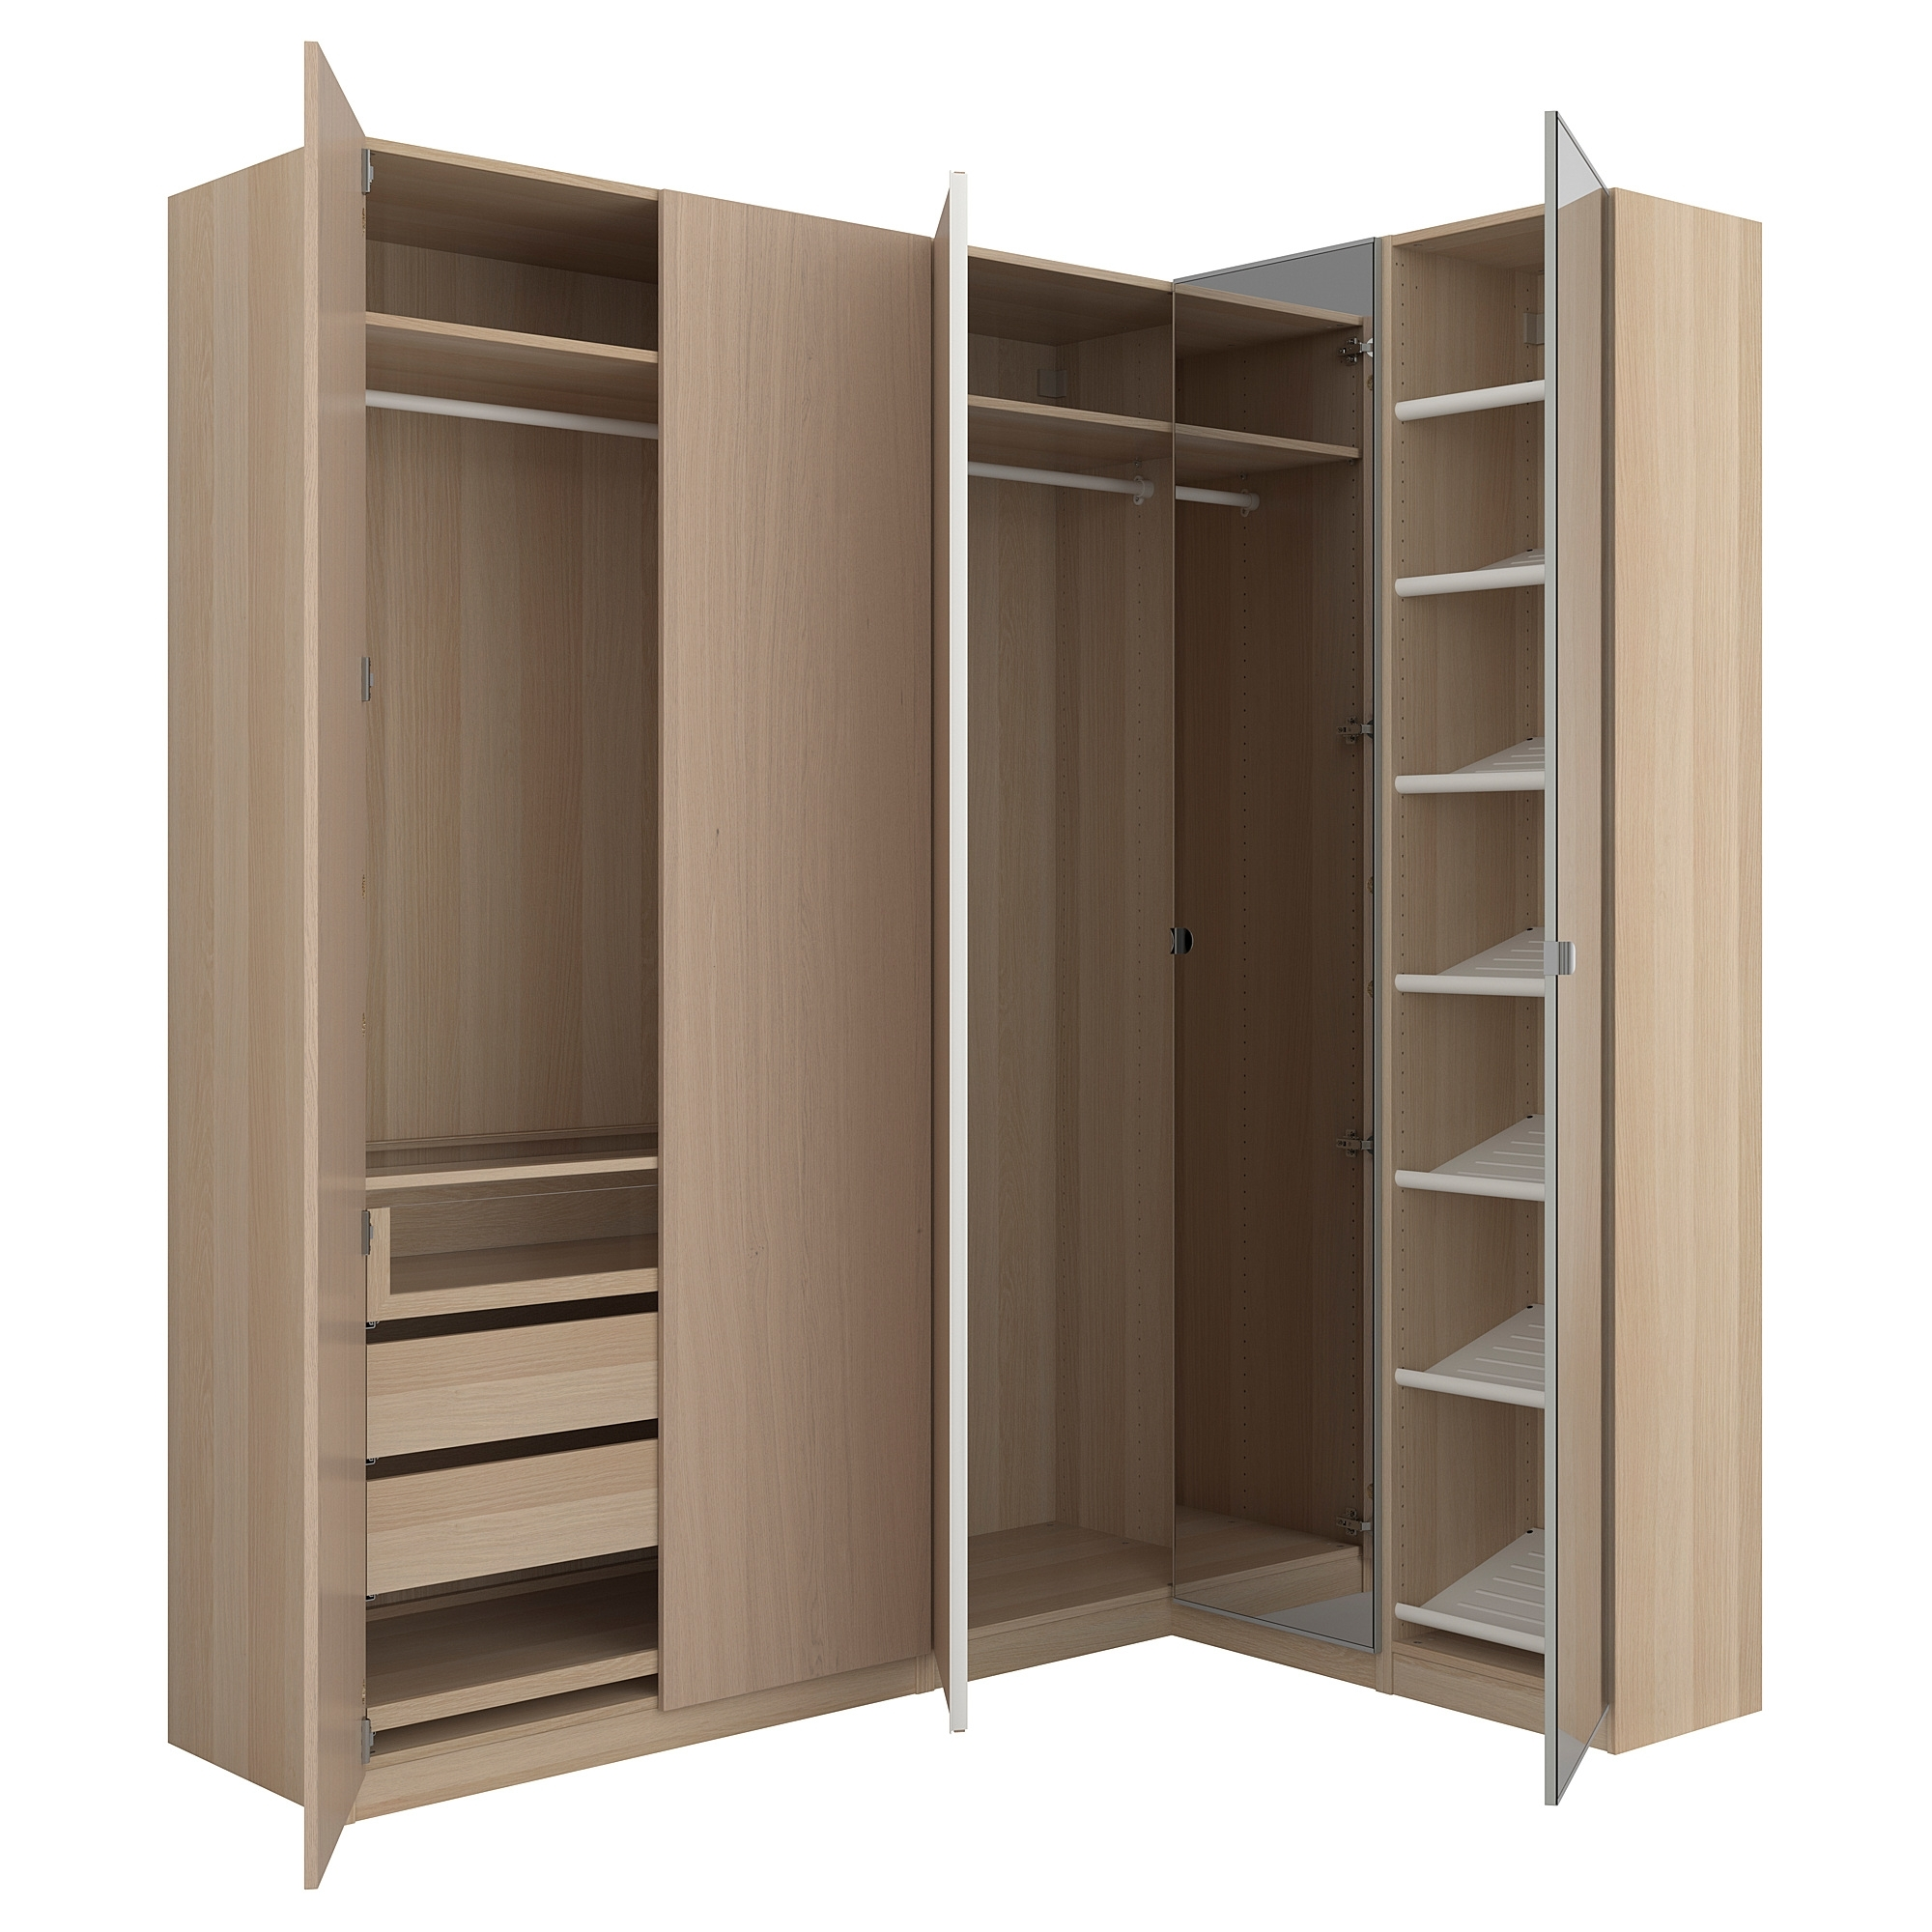 Fashionable Corner Wardrobes Inside Pax Corner Wardrobe White Stained Oak Effect/nexus Vikedal  (View 8 of 15)